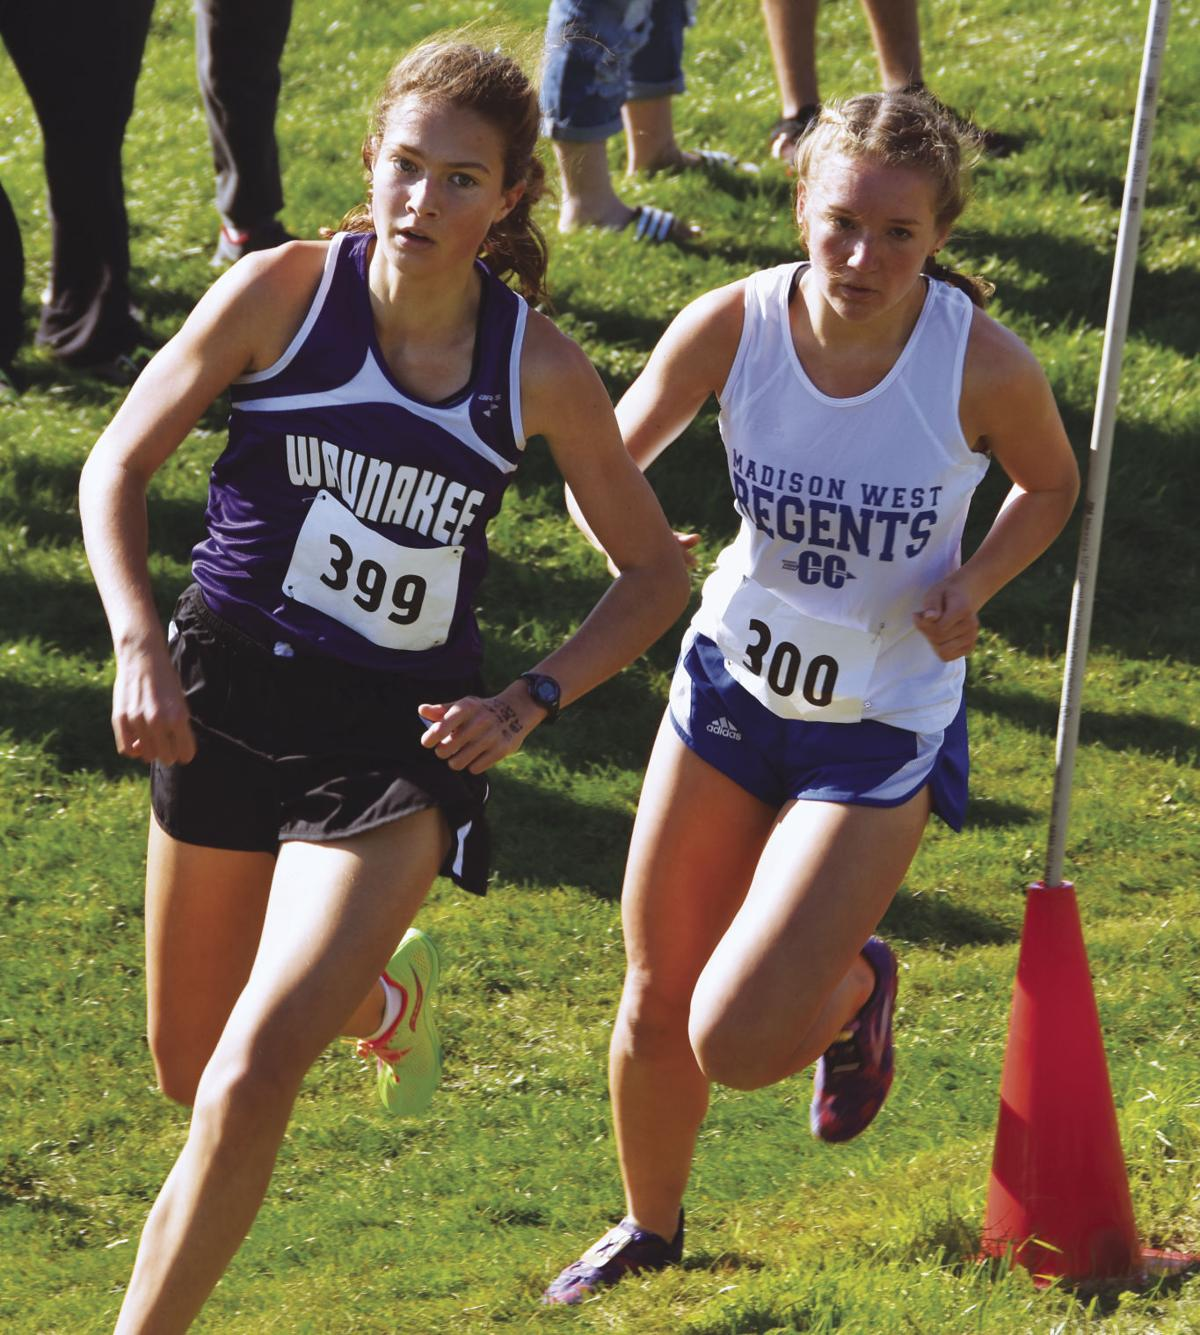 Prep girls cross country photo: Waunakee's Reagan Hoopes and Madison West's Vivian Hacker